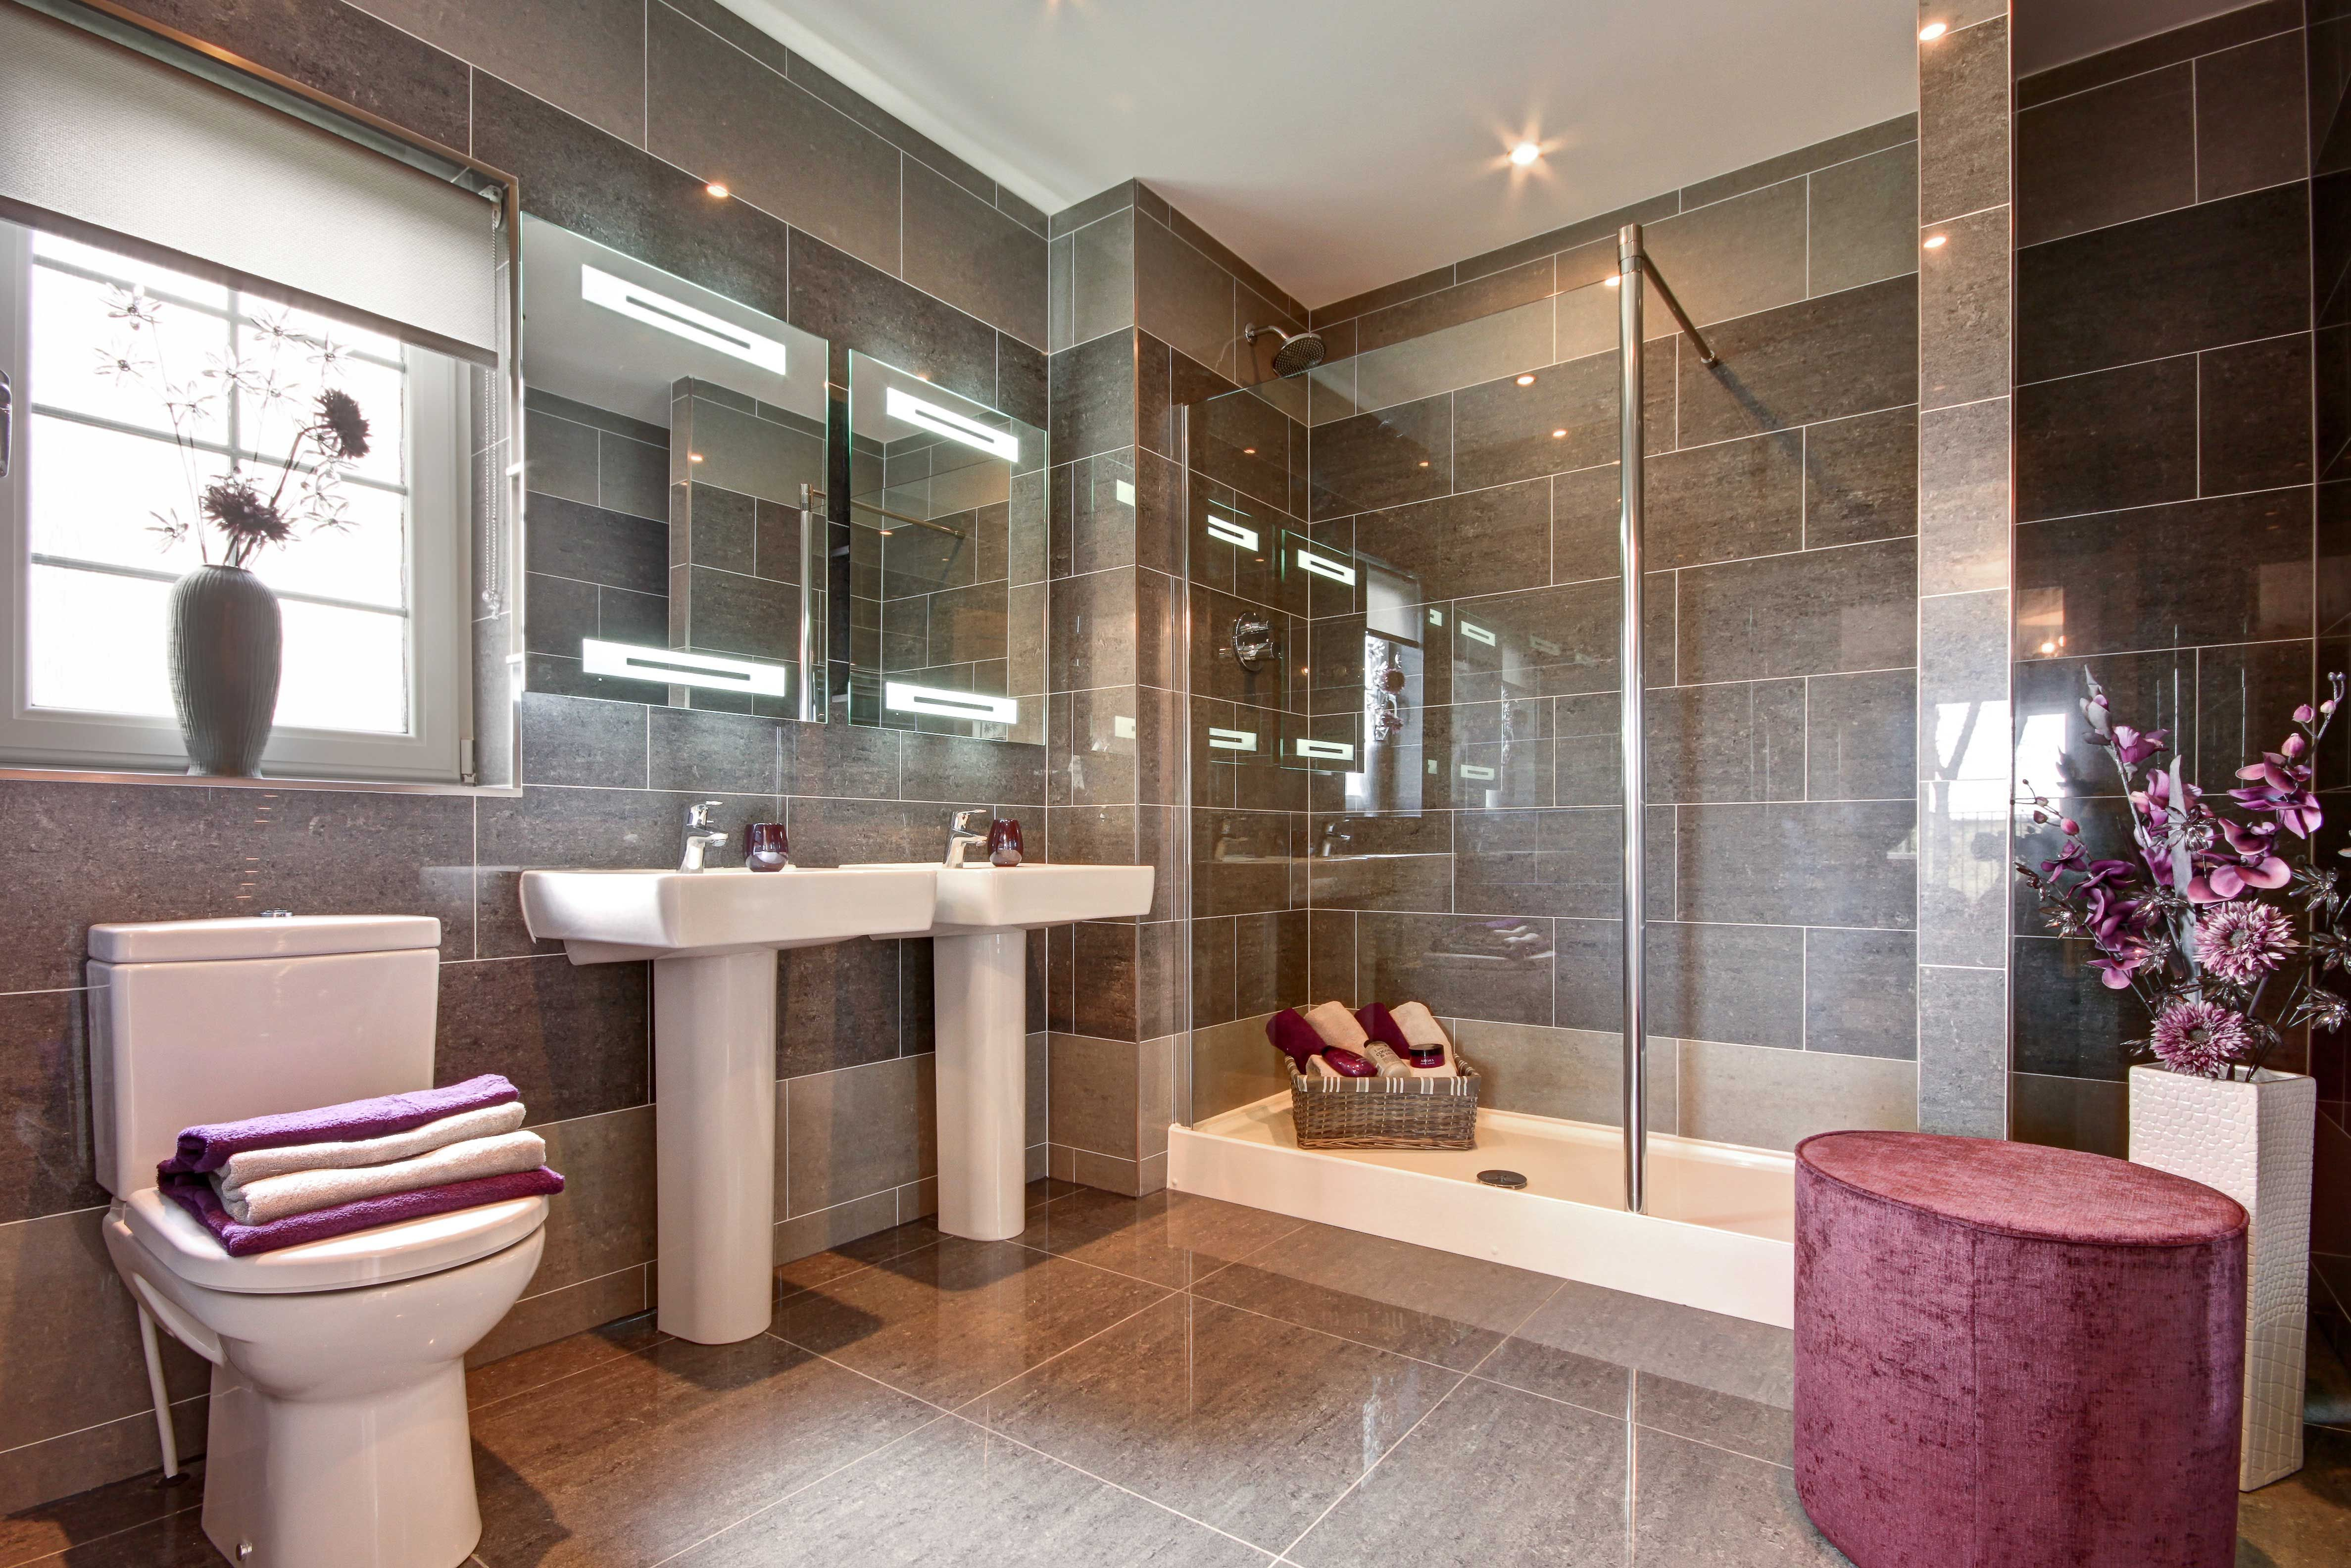 His & hers bathroom - luxurious living at Charles Church homes